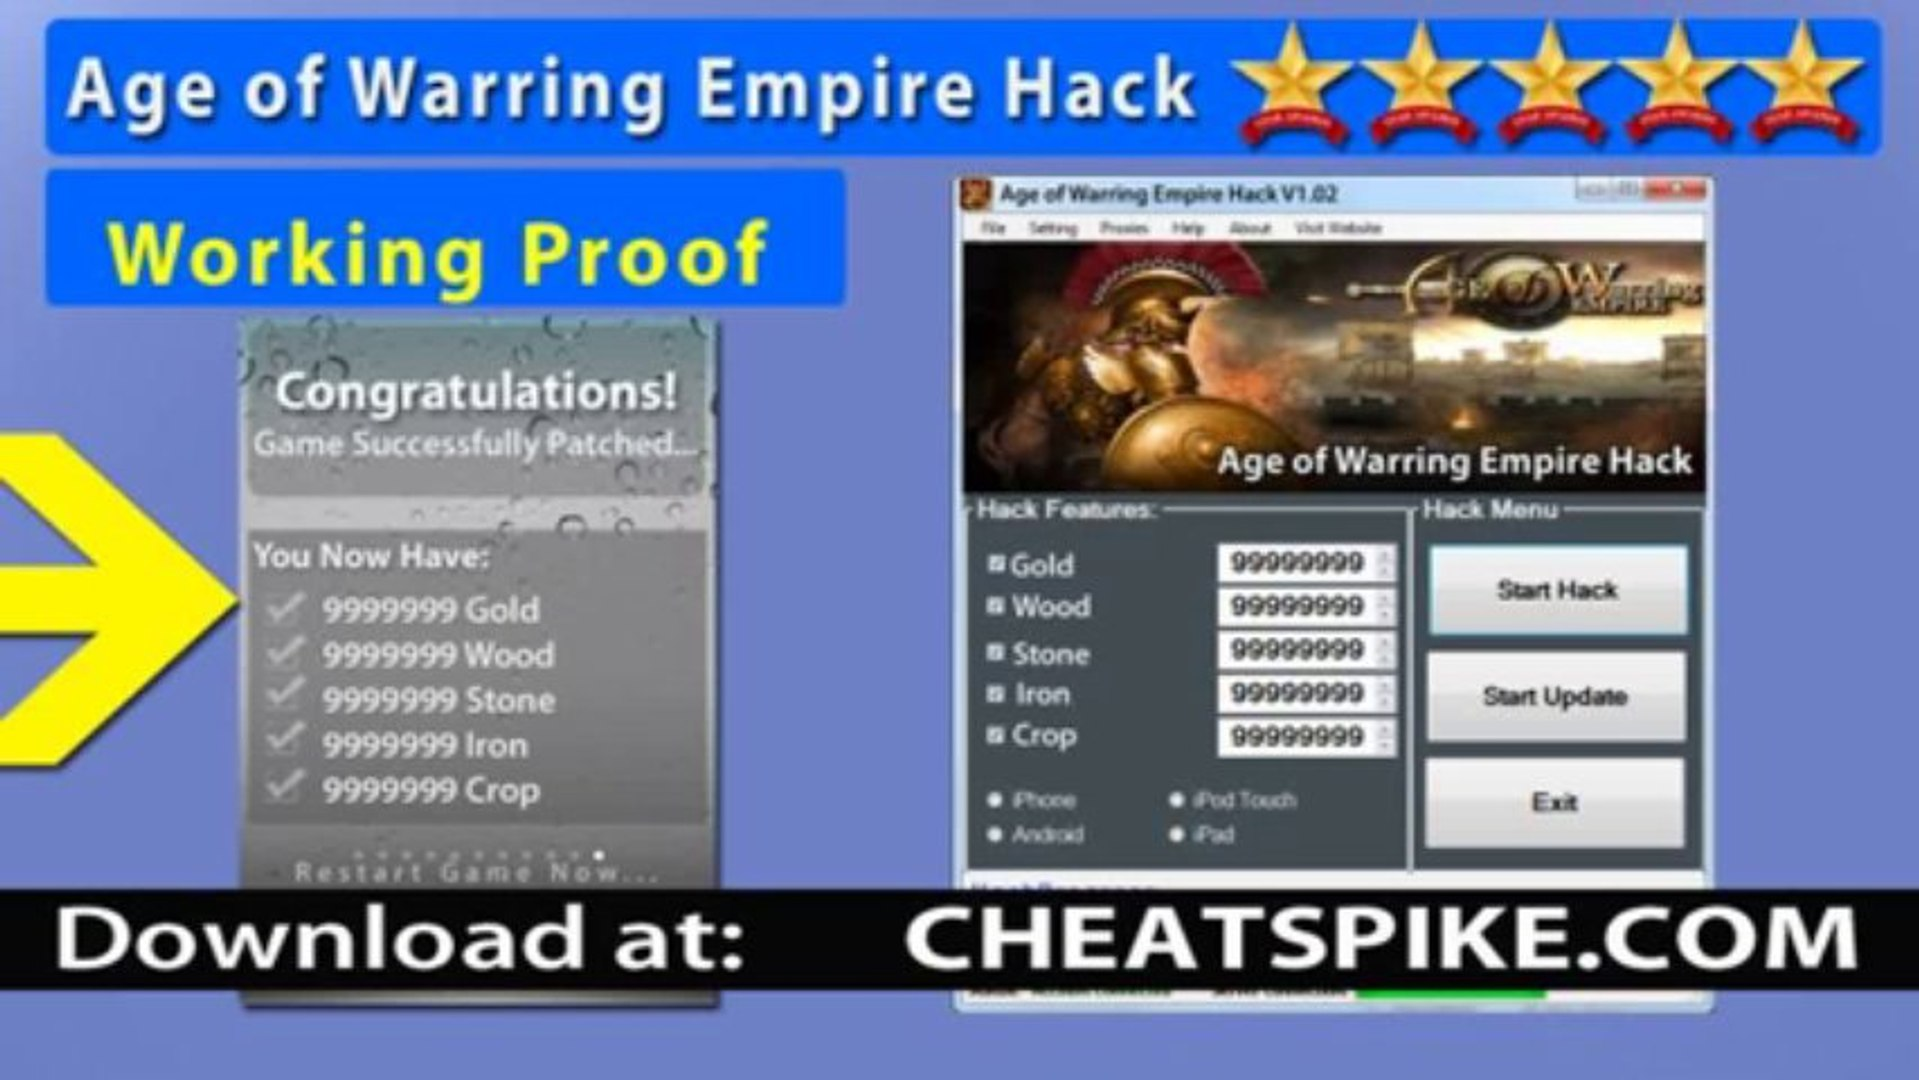 Age of Warring Empire Hack Get Gold, Wood, Stone and More Works on iPad *Best Age of Warring Empire